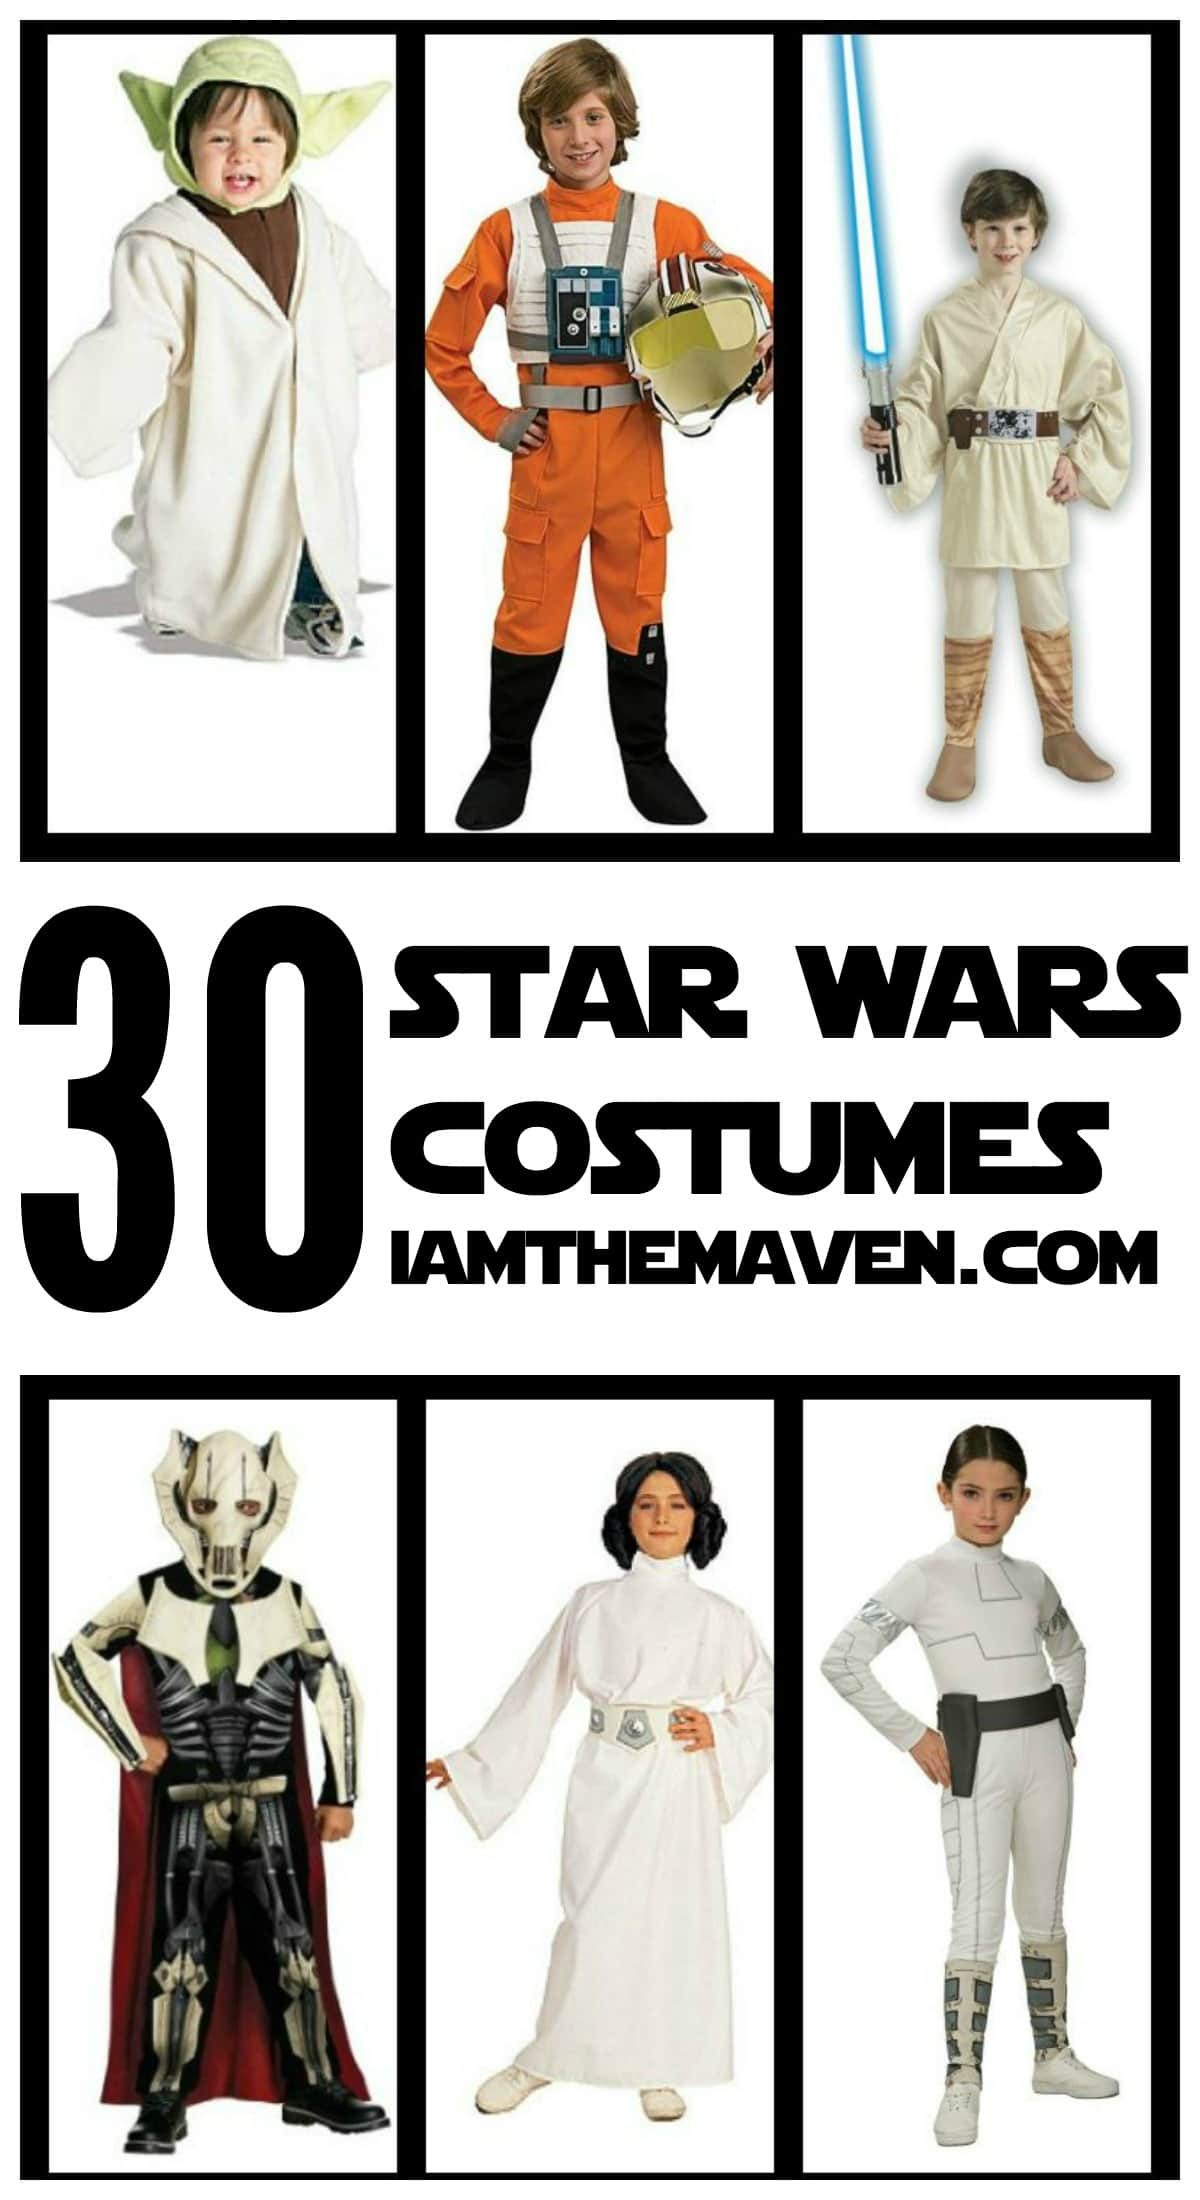 A galactic collection of Star Wars costumes just in time for Halloween